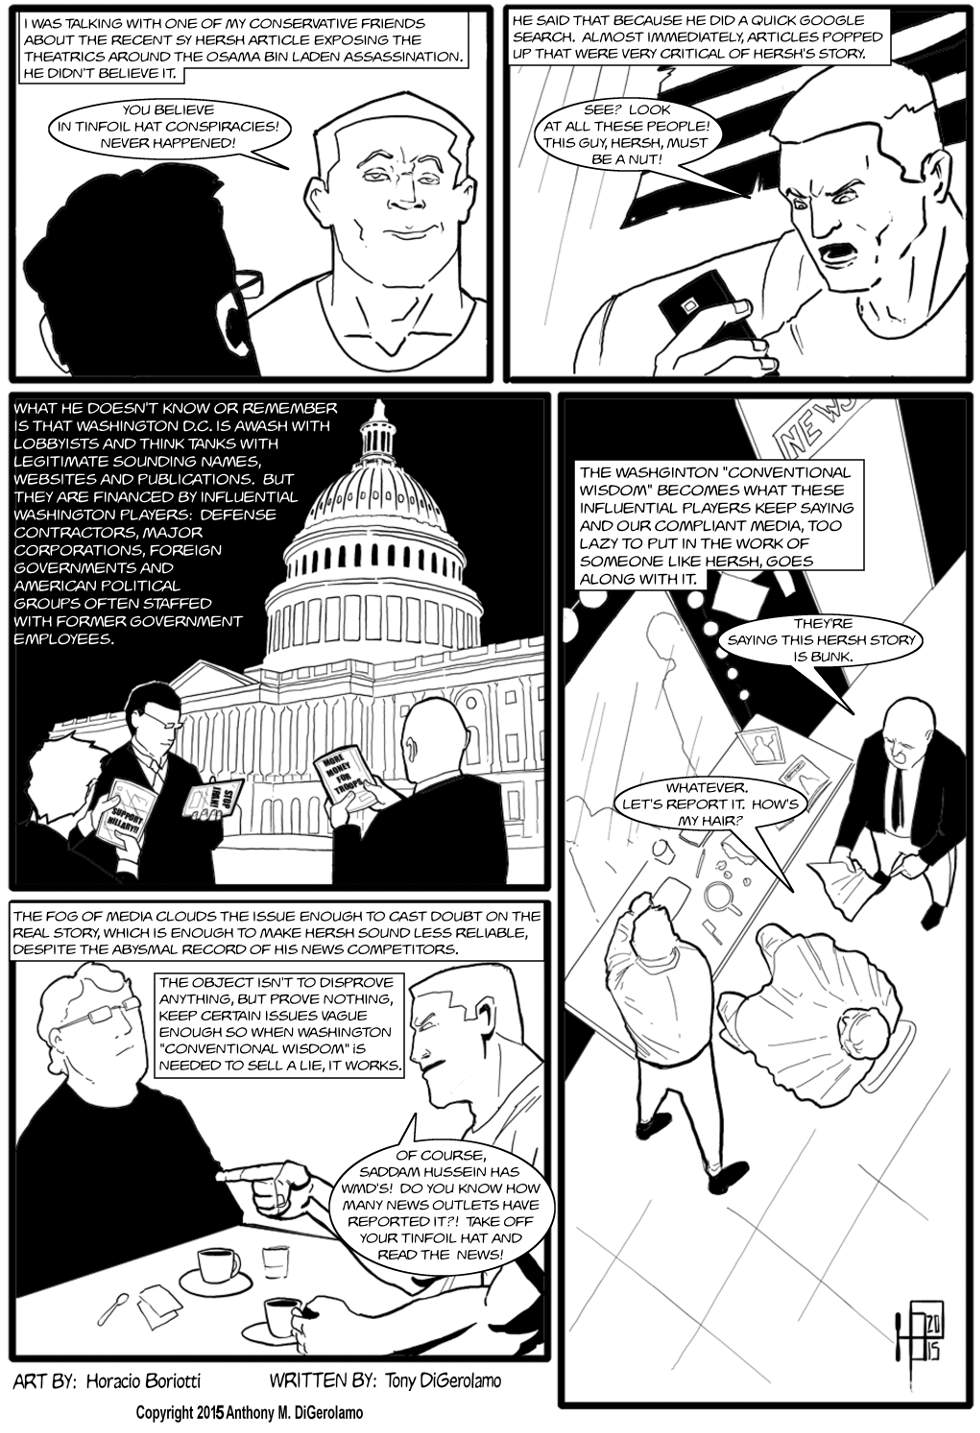 The Antiwar Comic:  Smear Job